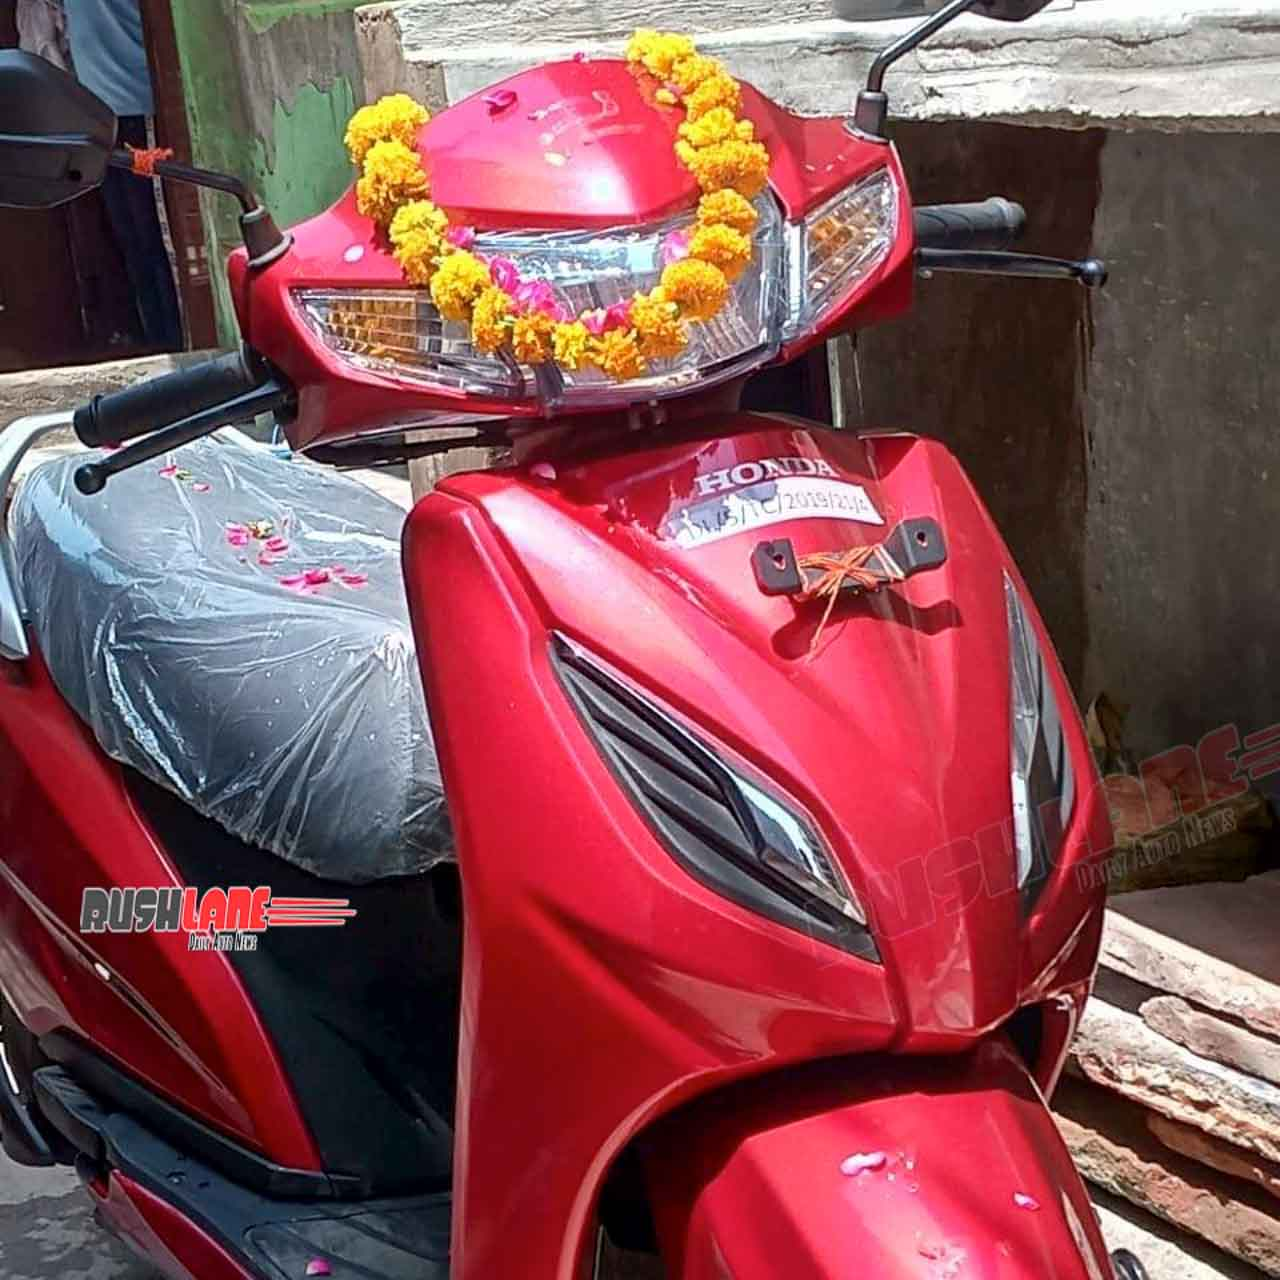 Honda Activa helps company sales increase 4X in June 2020 over May